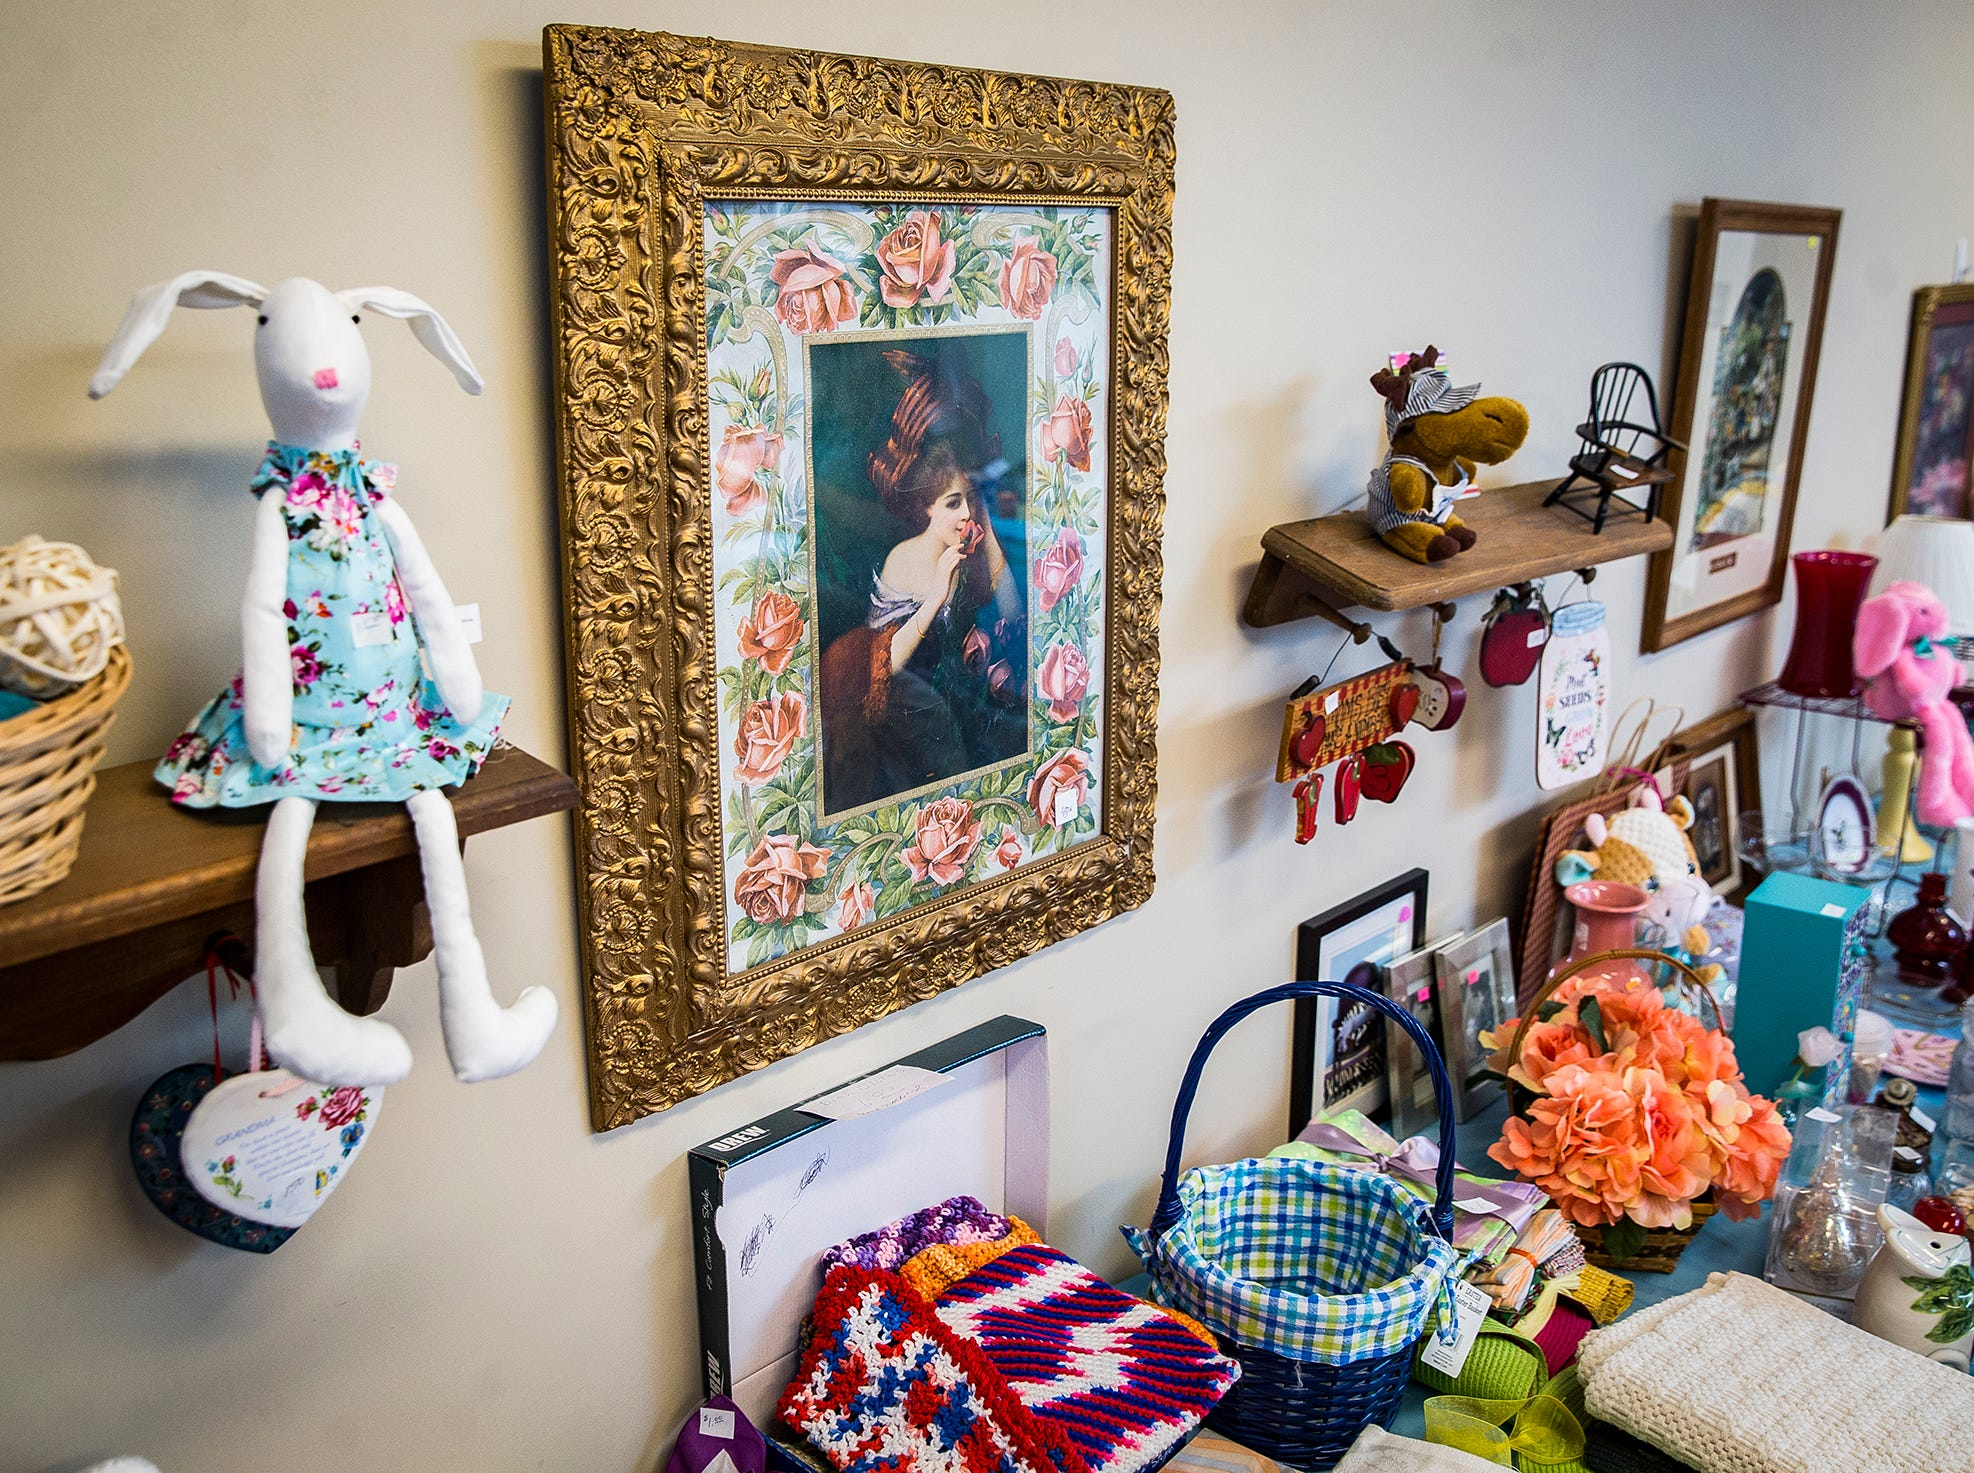 Silver Birch resident Kay Butler created and manages the Silver Boutique, a thrift and craft store, with help from her niece Susie Cooper.